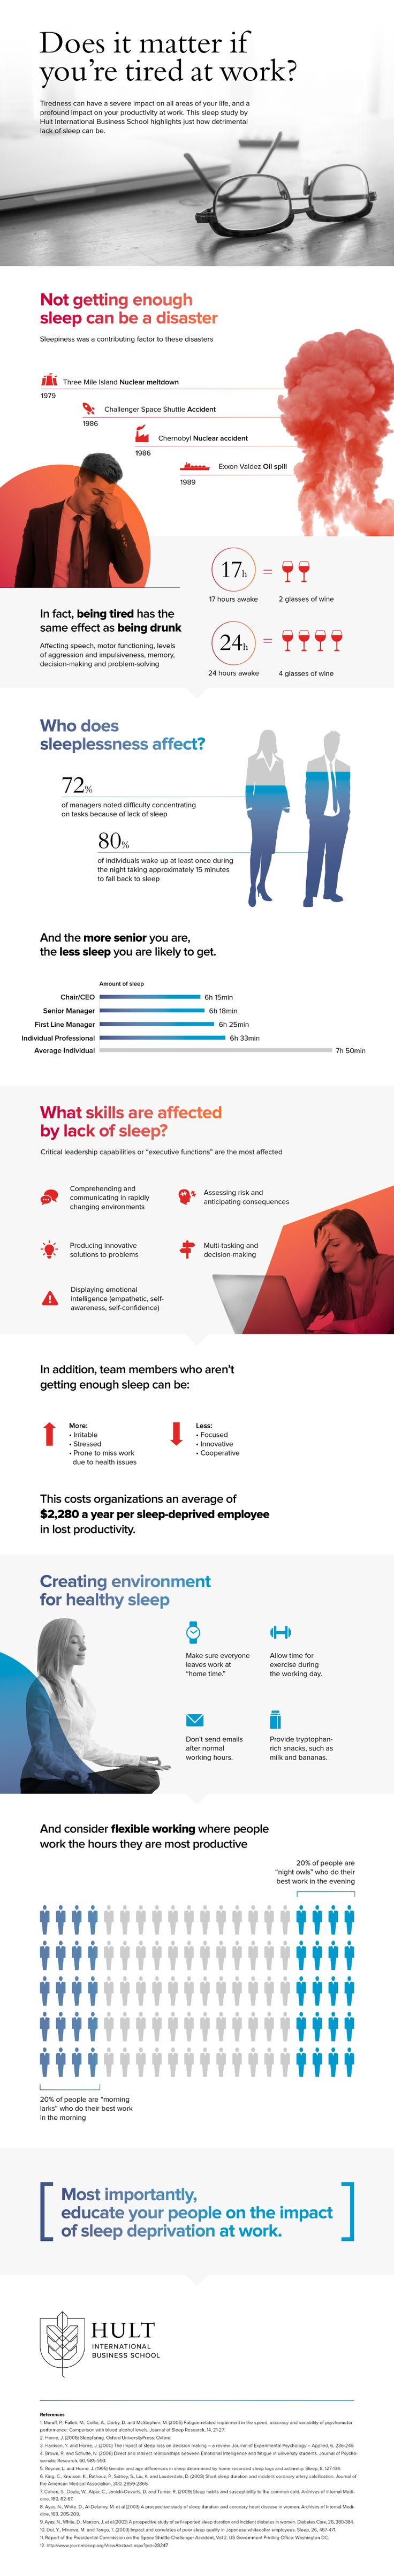 Does It Matter If You're Tired At Work? #Infographic #Workplace